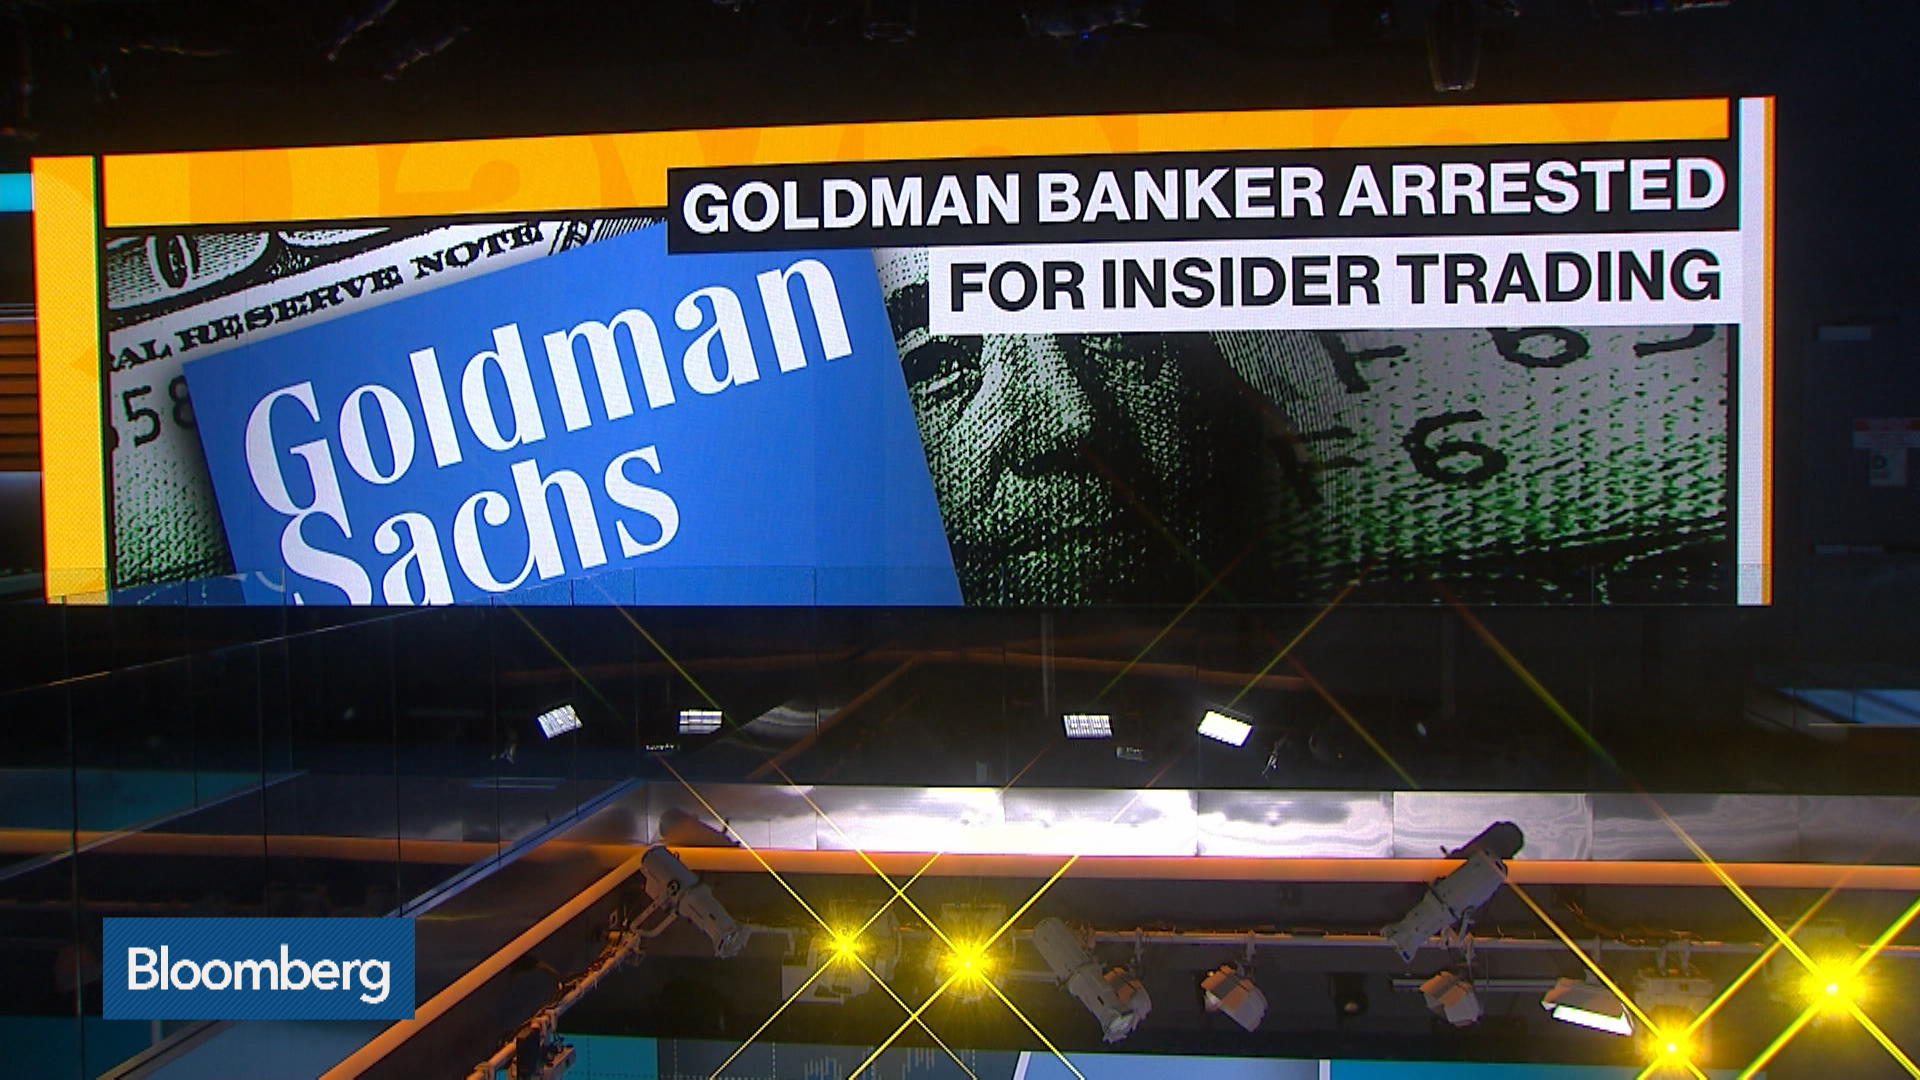 Goldman Sachs Insider Trading Charge Is Third in 18 Months